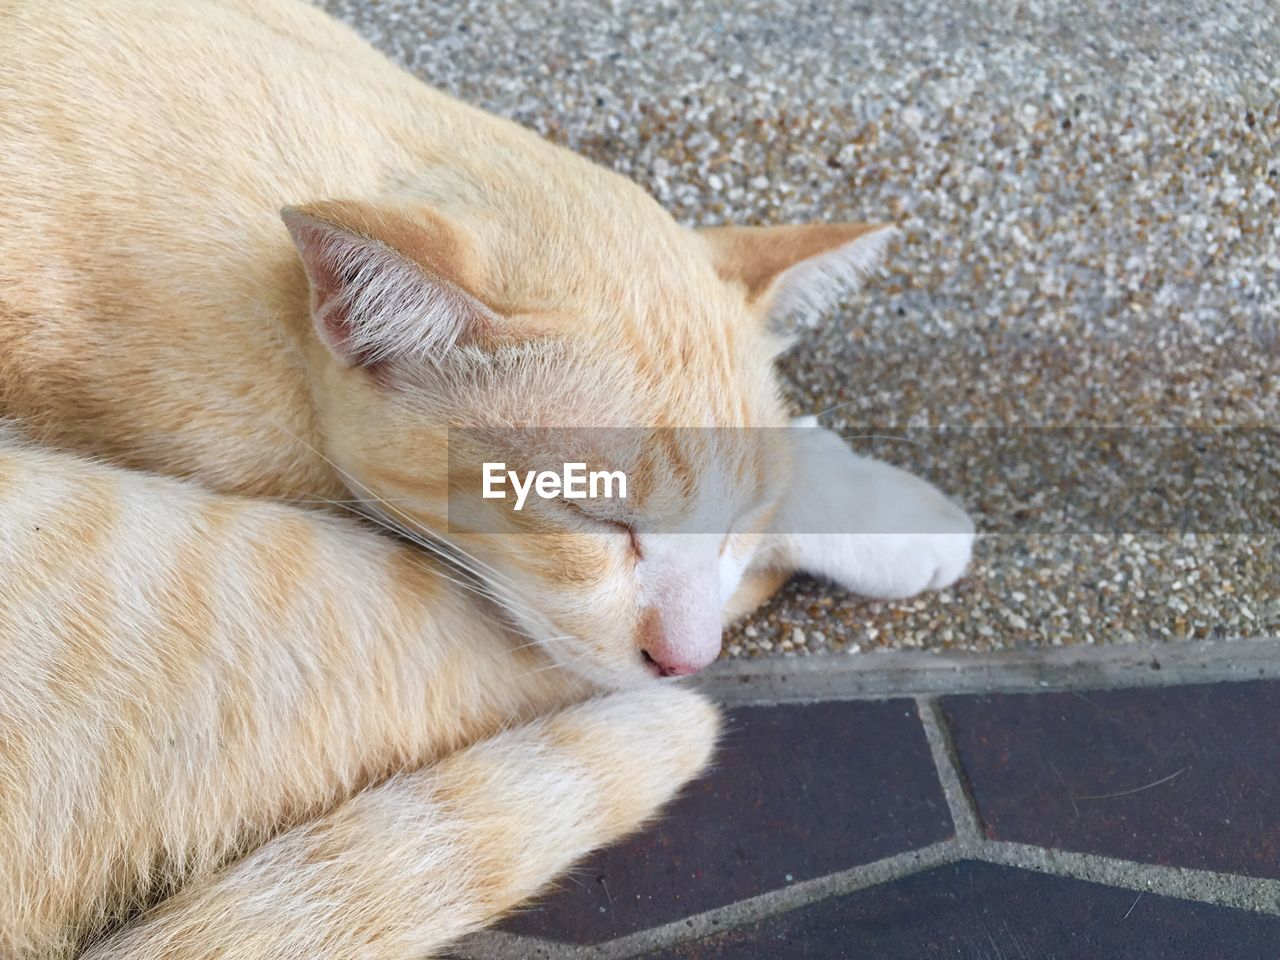 domestic, pets, mammal, one animal, animal themes, animal, domestic animals, relaxation, vertebrate, high angle view, domestic cat, cat, feline, lying down, dog, sleeping, no people, canine, resting, eyes closed, animal head, ginger cat, whisker